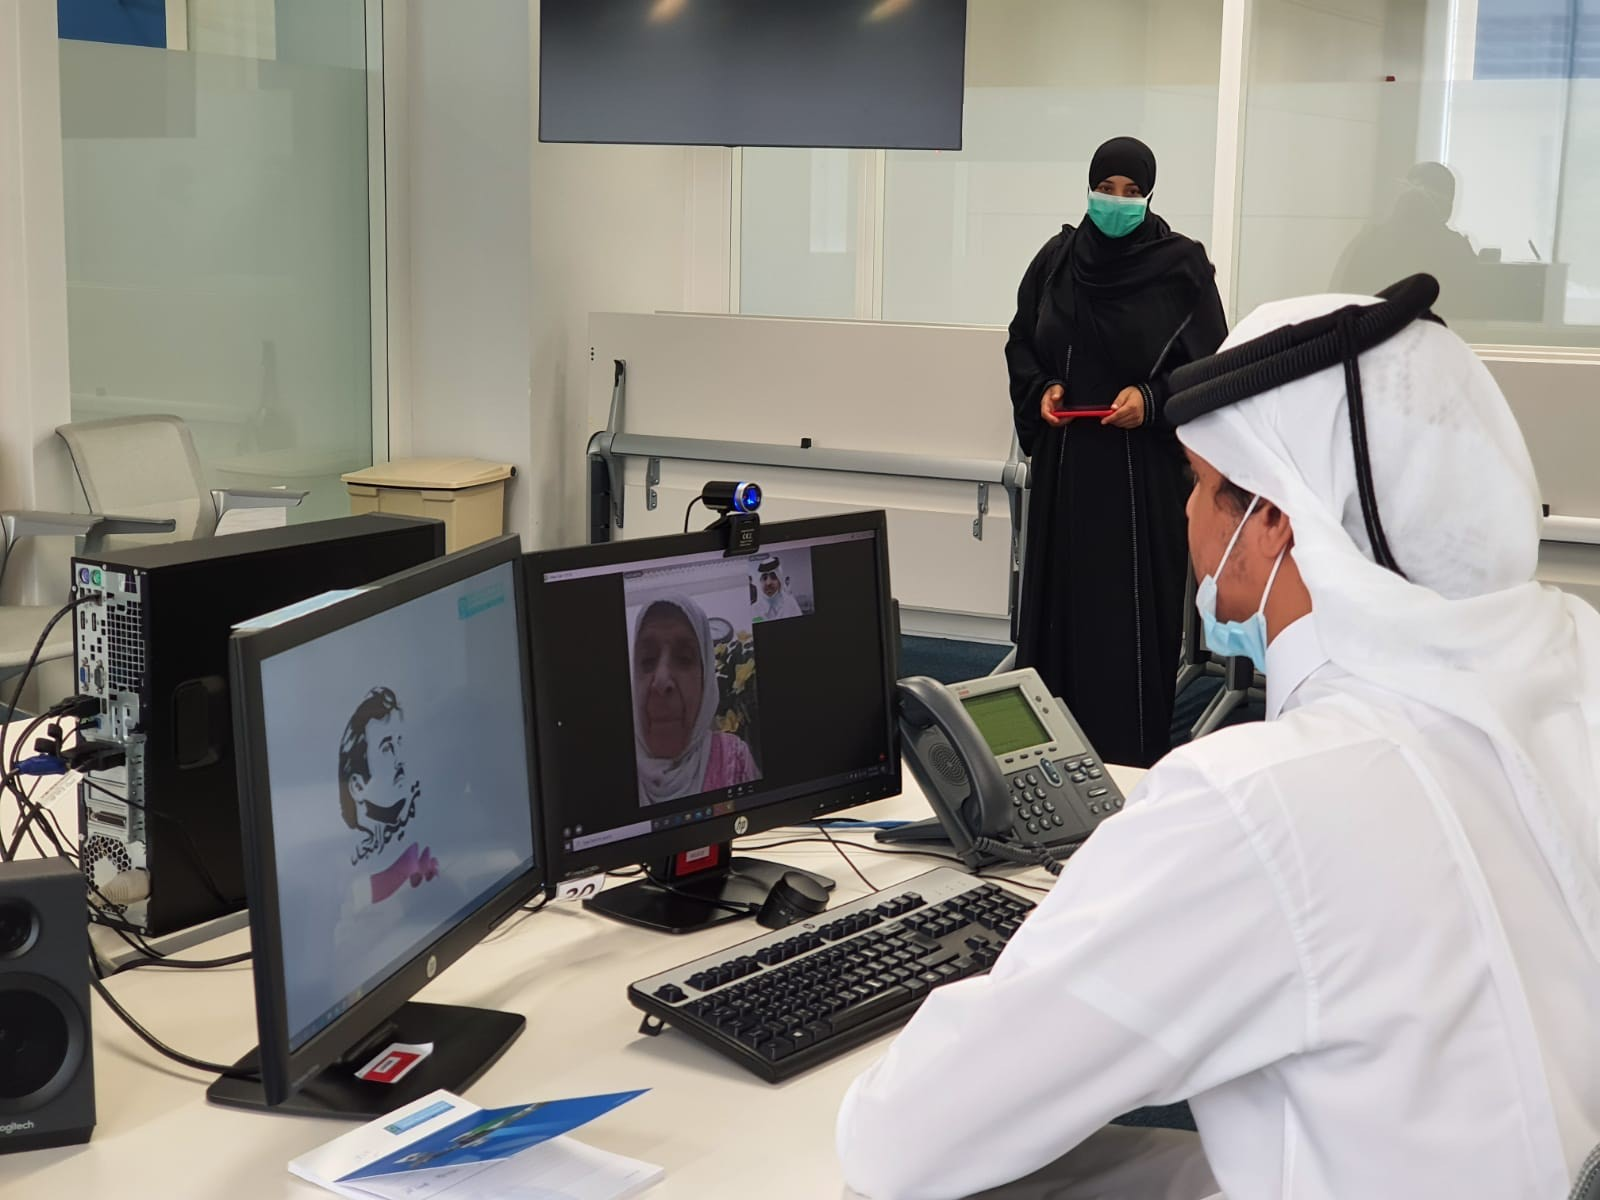 Sheikh Thani bin Hamad Al-Thani participates in HMC's elderly telephone reassurance service